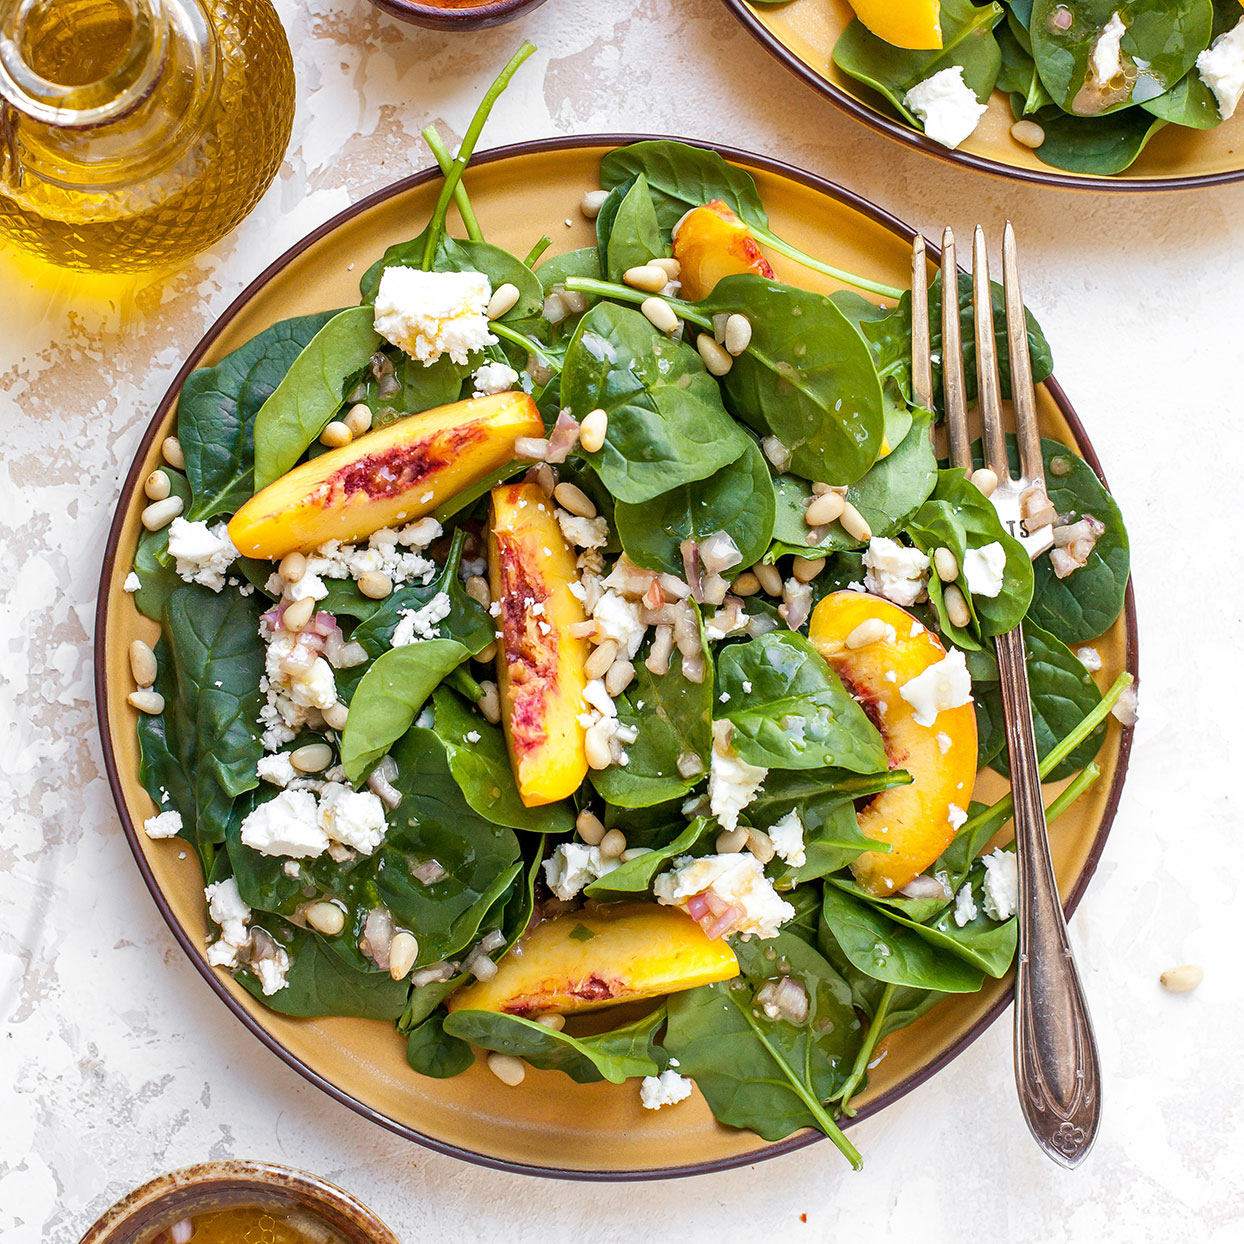 Peach & Spinach Salad with Feta Trusted Brands